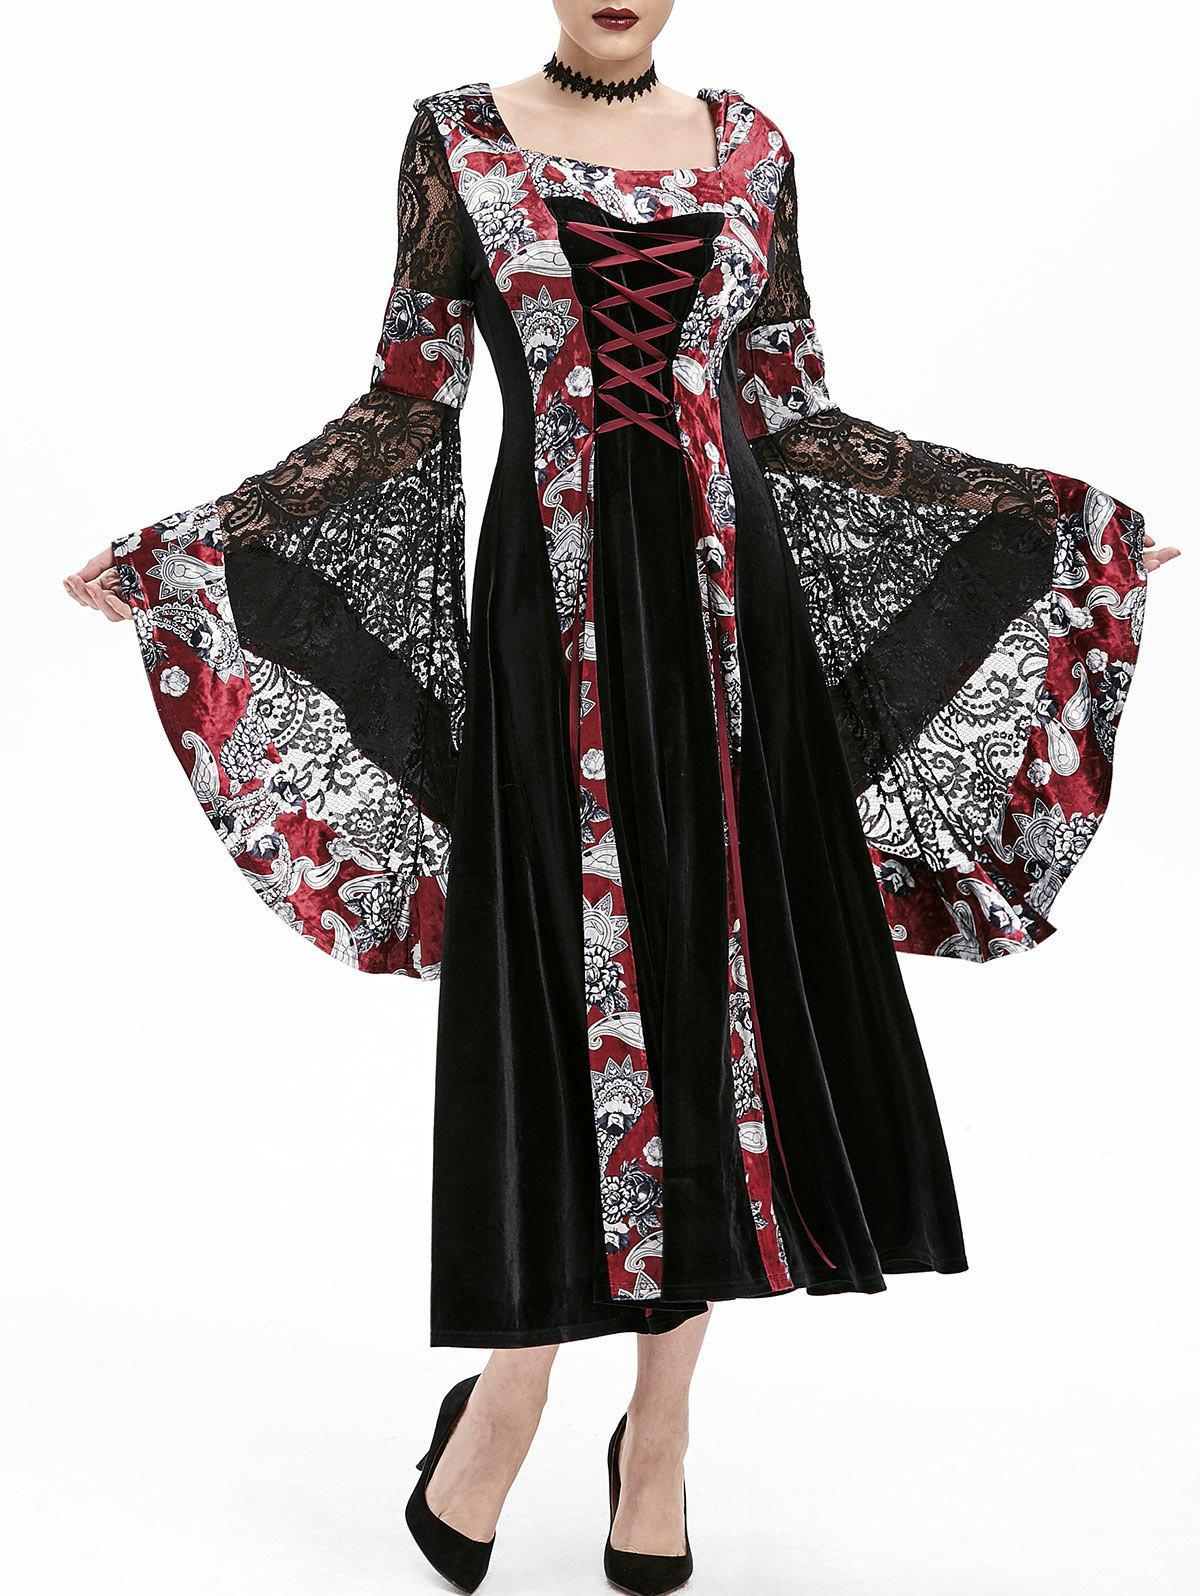 New Hooded Lace Up Bell Sleeve Gothic Halloween Dress